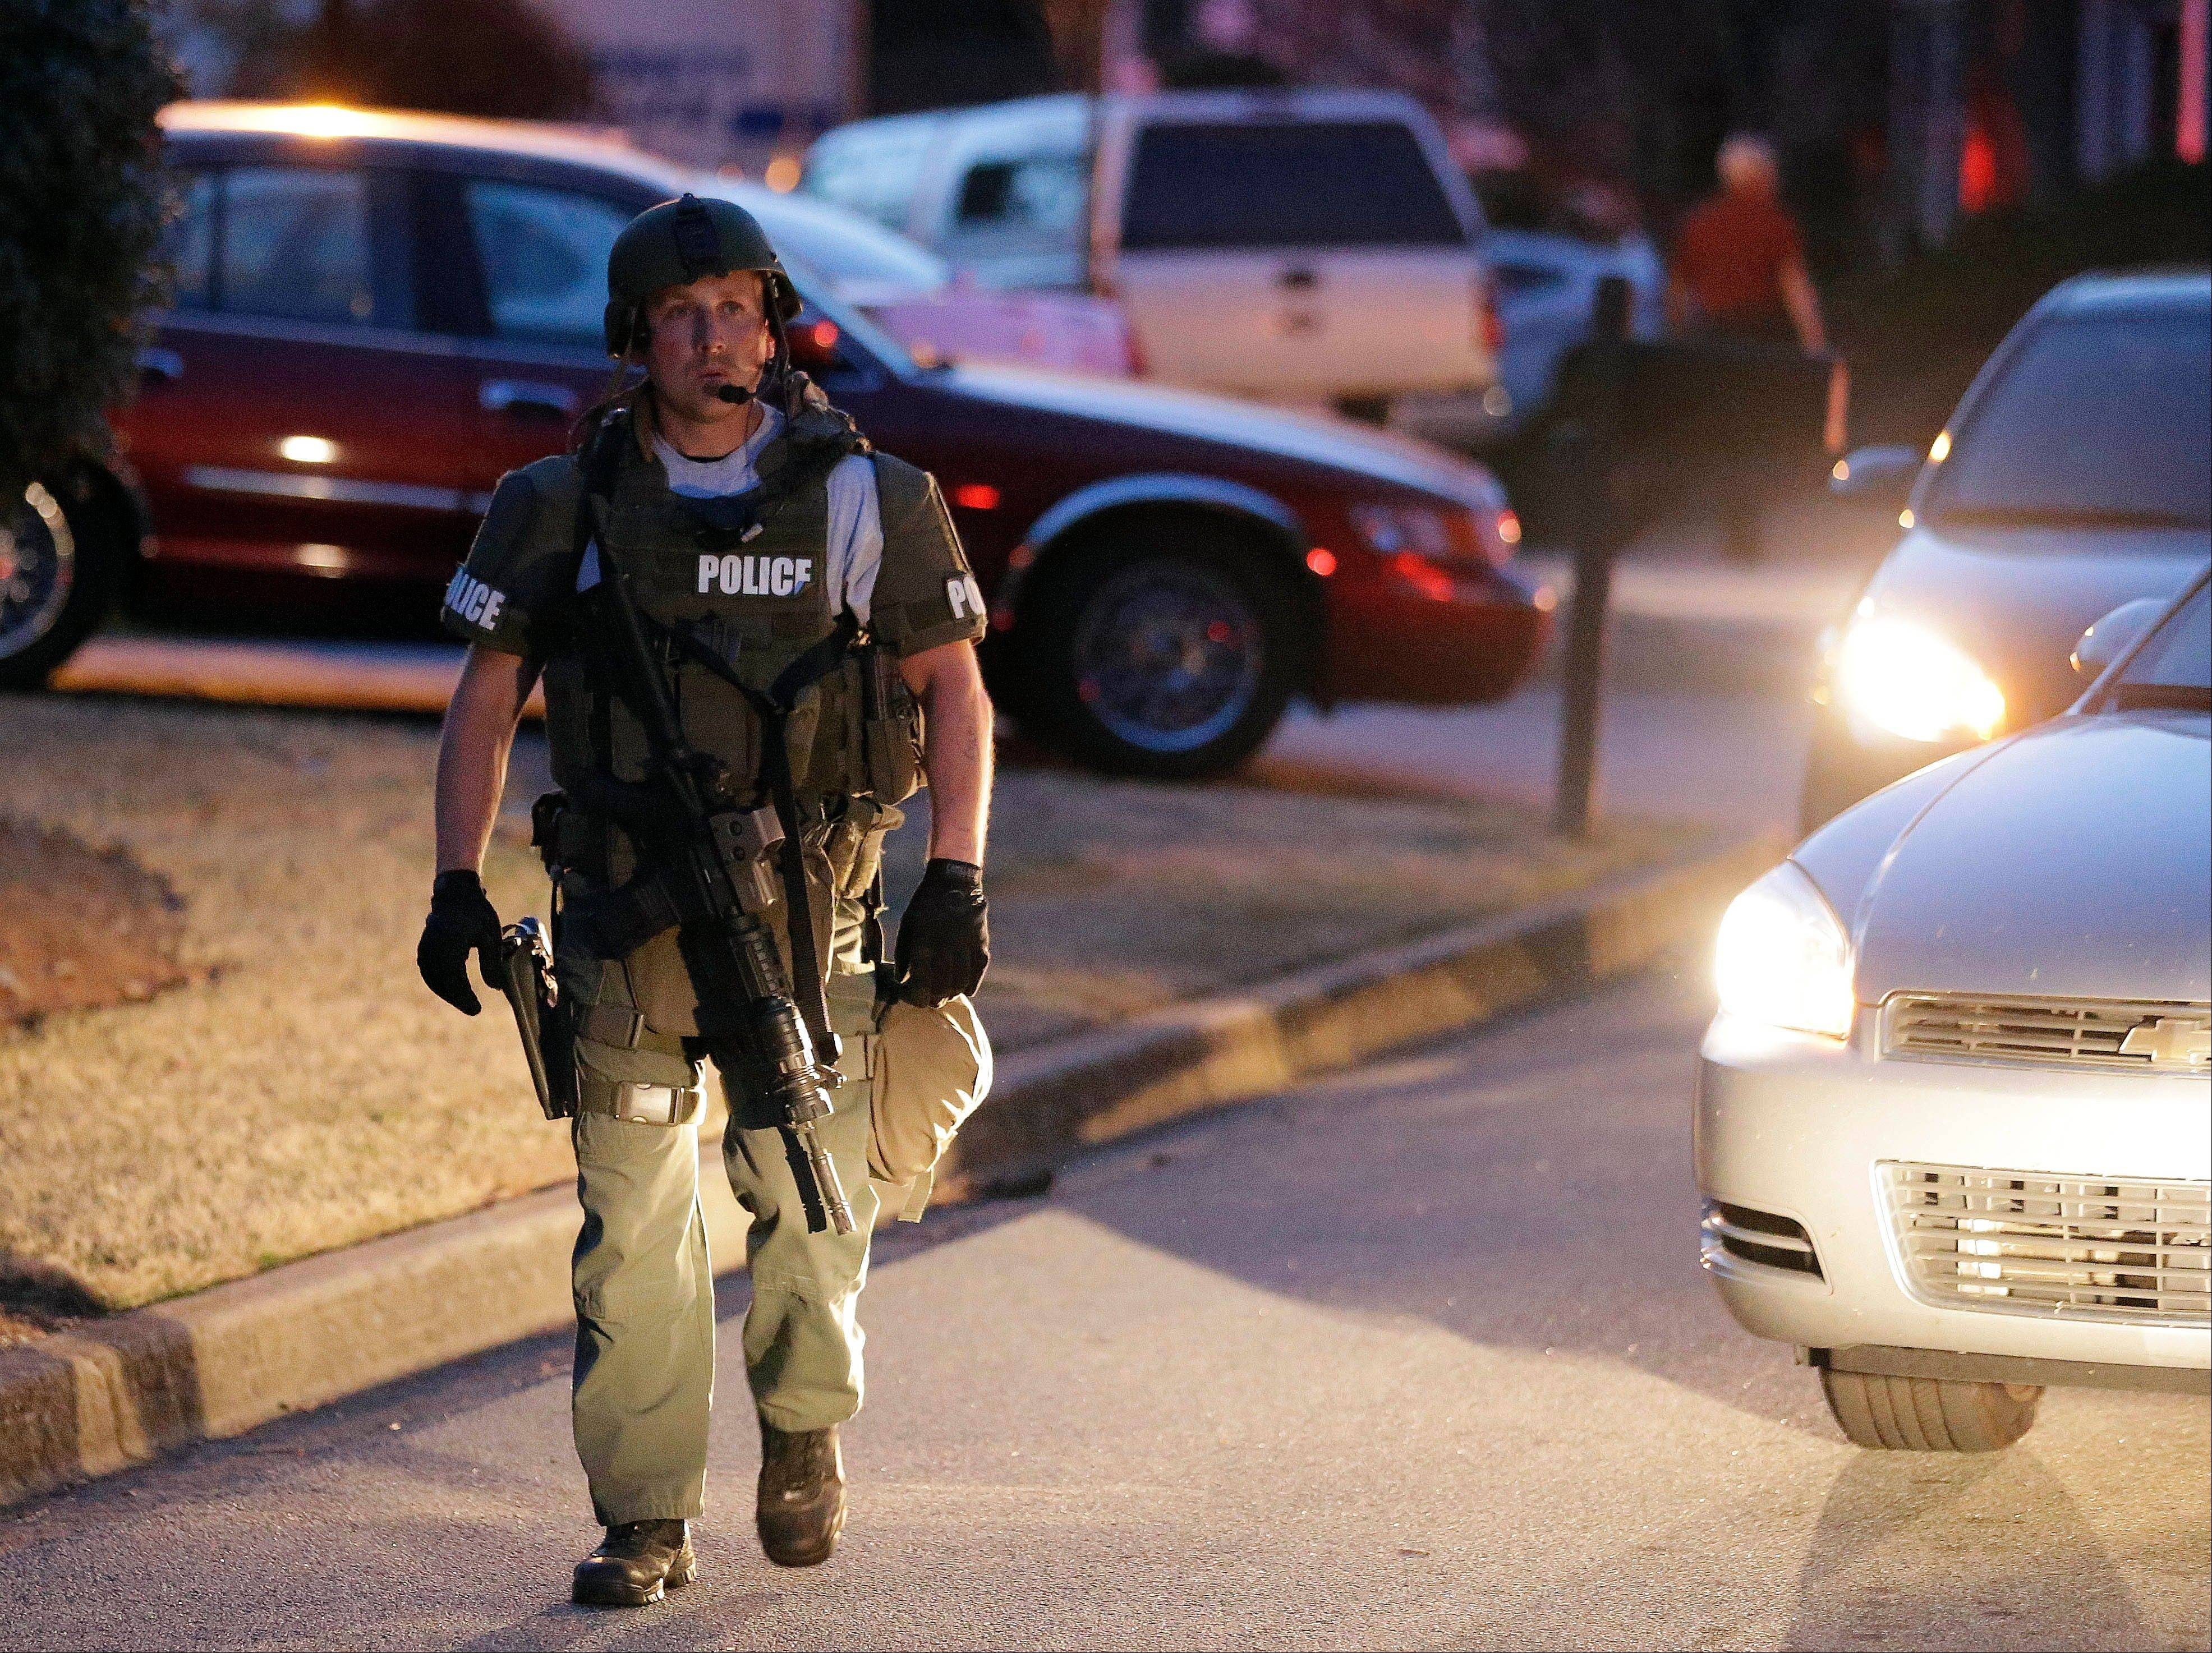 A police officer leaves the scene after an explosion and gunshots were heard near the scene where a man was holding four firefighters hostage Wednesday in Suwanee, Ga. A police spokesman said the suspect was dead and none of the hostage suffered serious injuries.